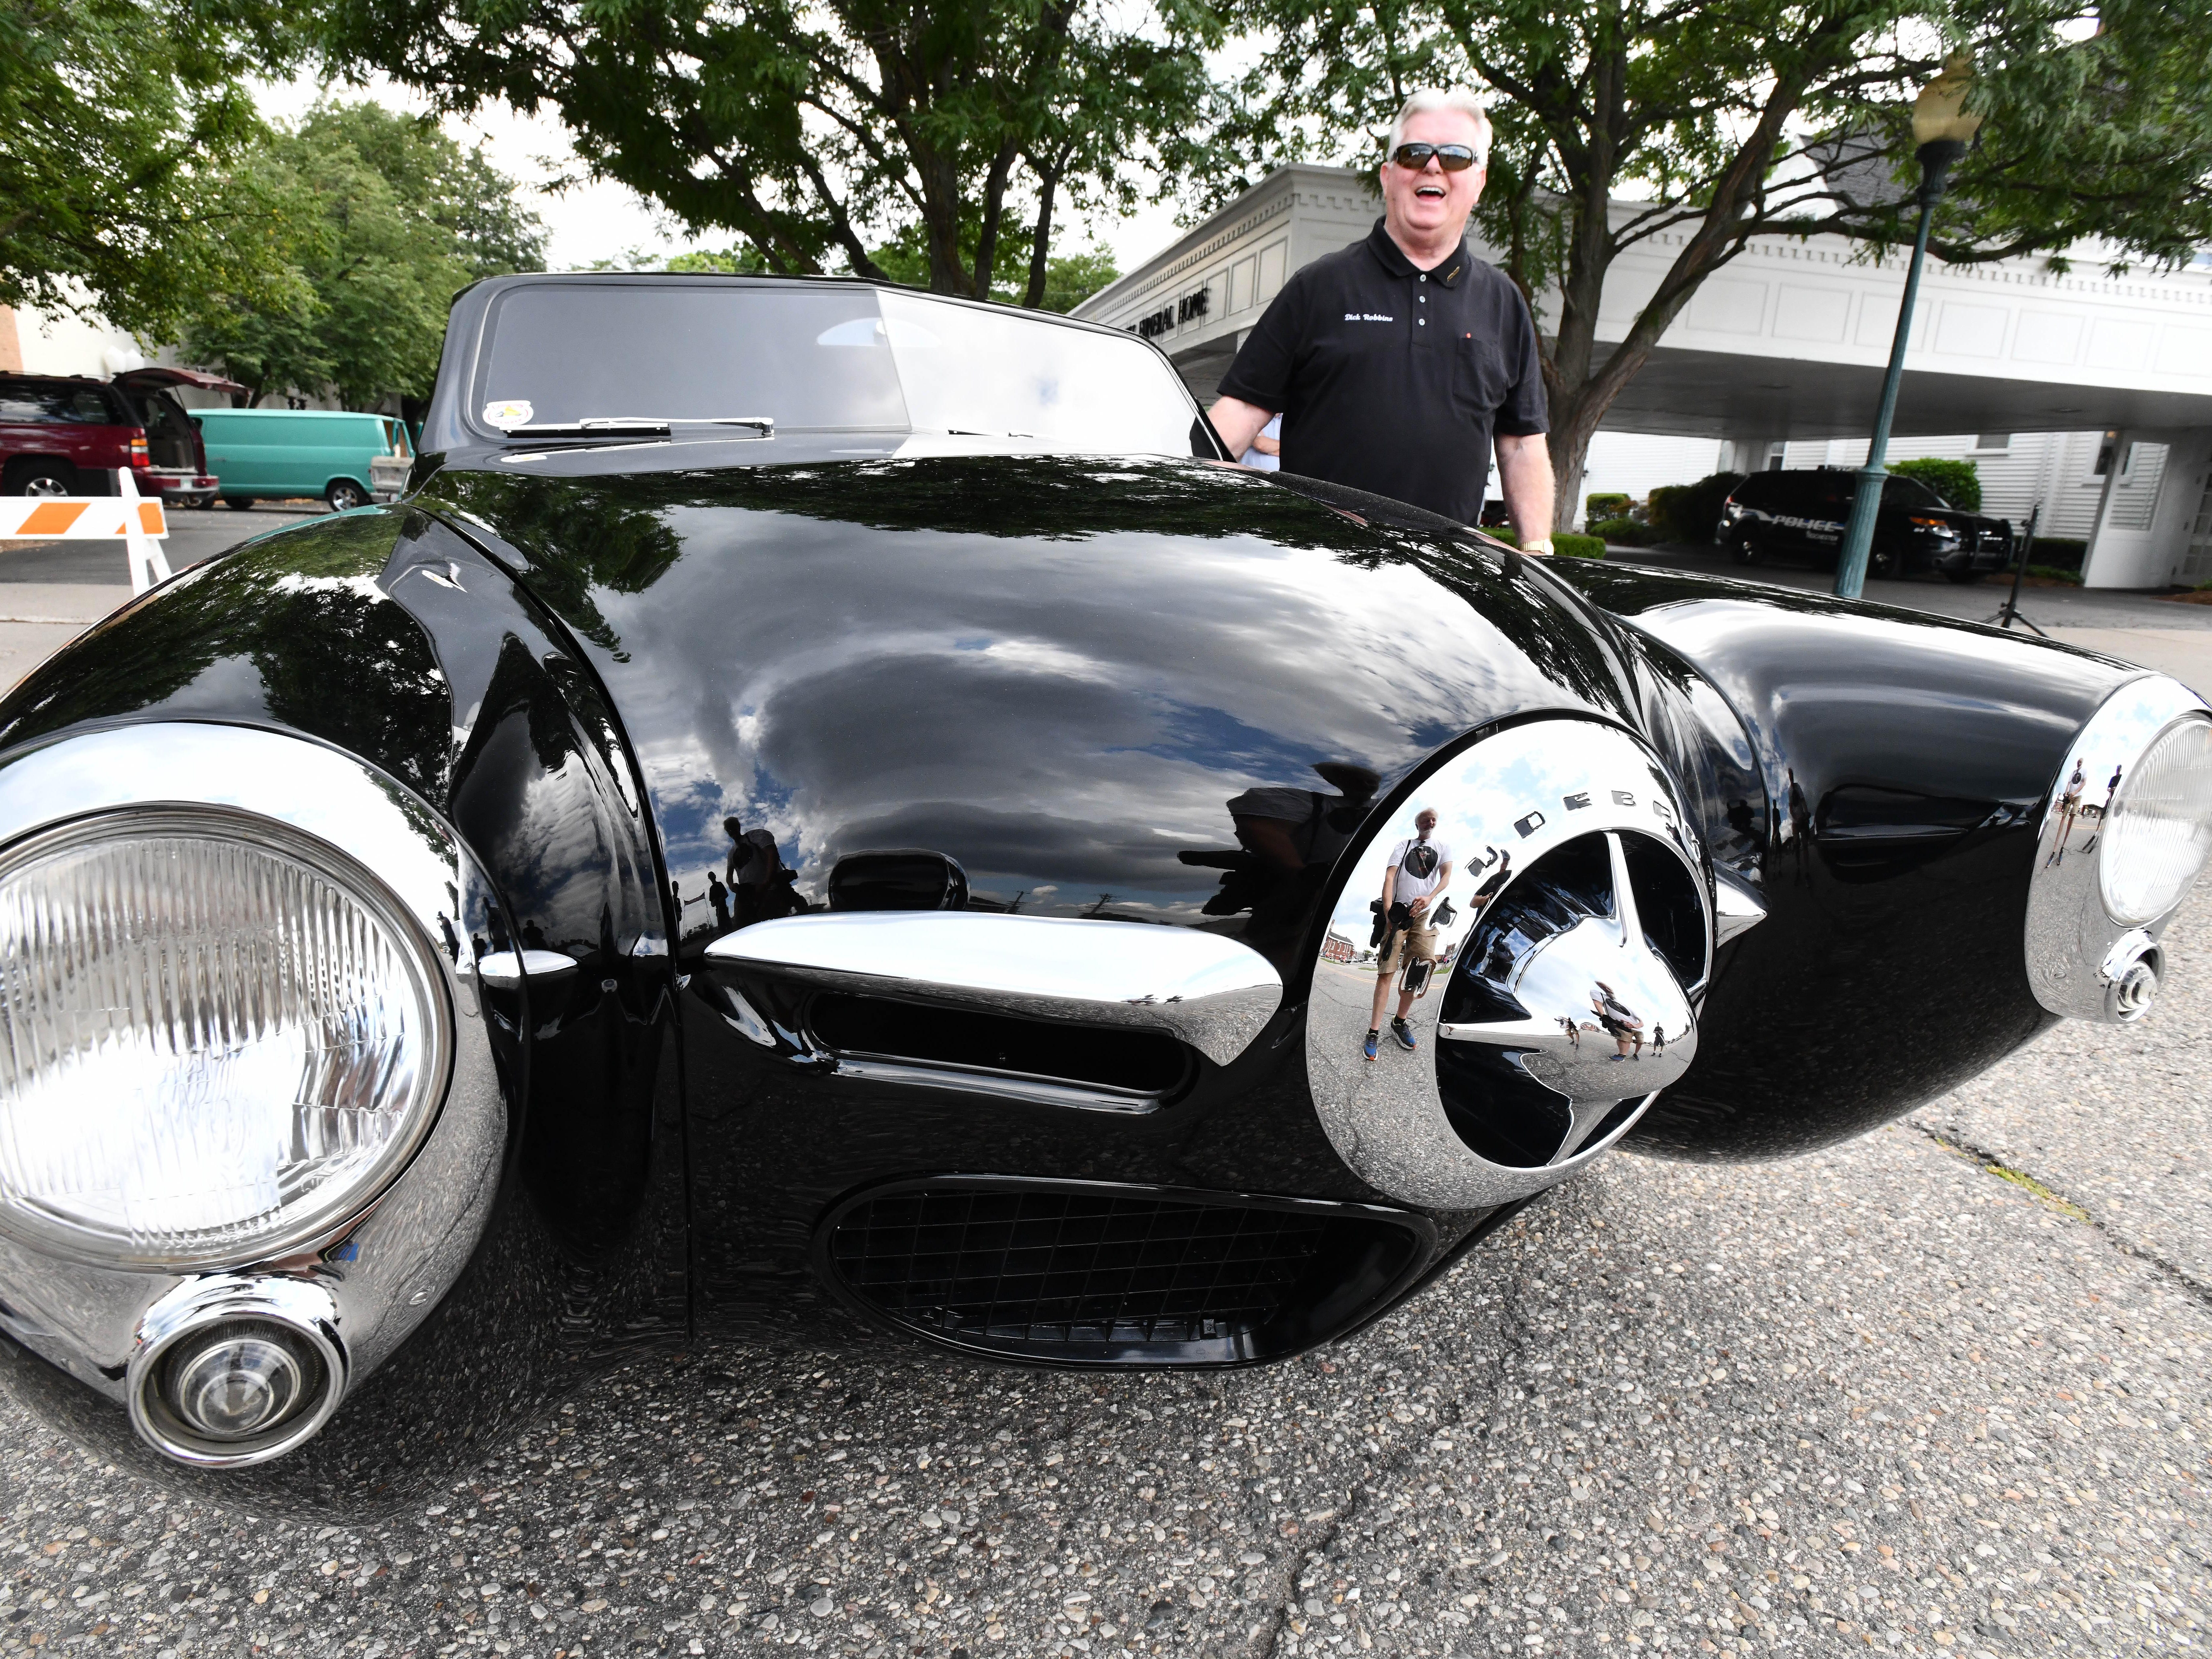 """Dick Robbins with the 19th annual Rockin Rods n' Rochester 'Best of Show' 1947 Studebaker named """"Black Bart""""  at the 19th annual Rockin Rods n' Rochester in Rochester, Michigan on August 12, 2018."""